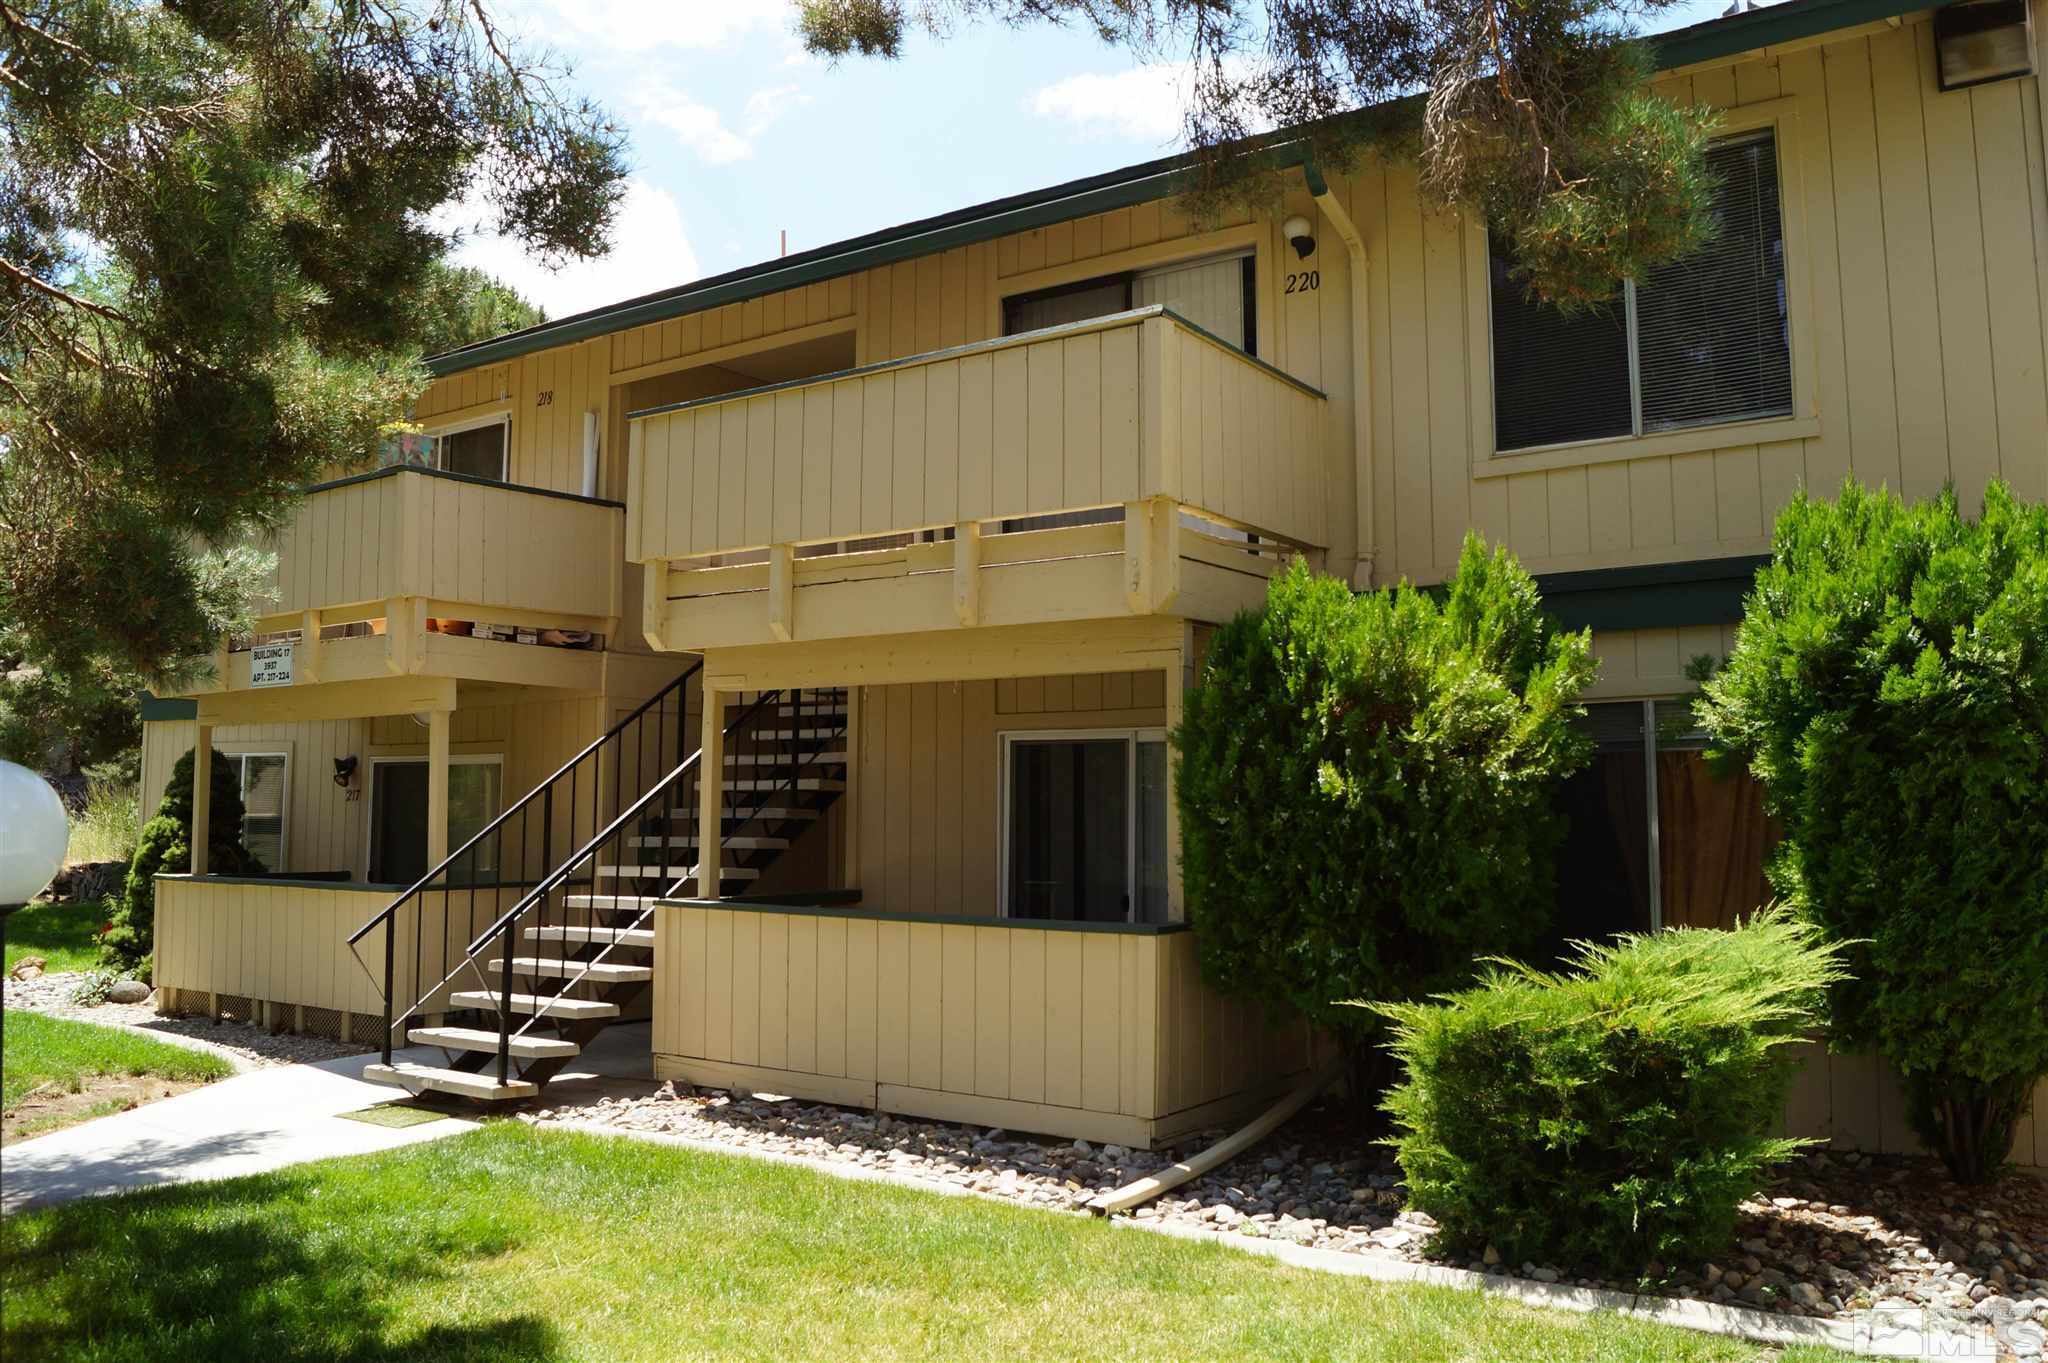 Image for 3937 Clear Acre, Reno, NV 89512-4211